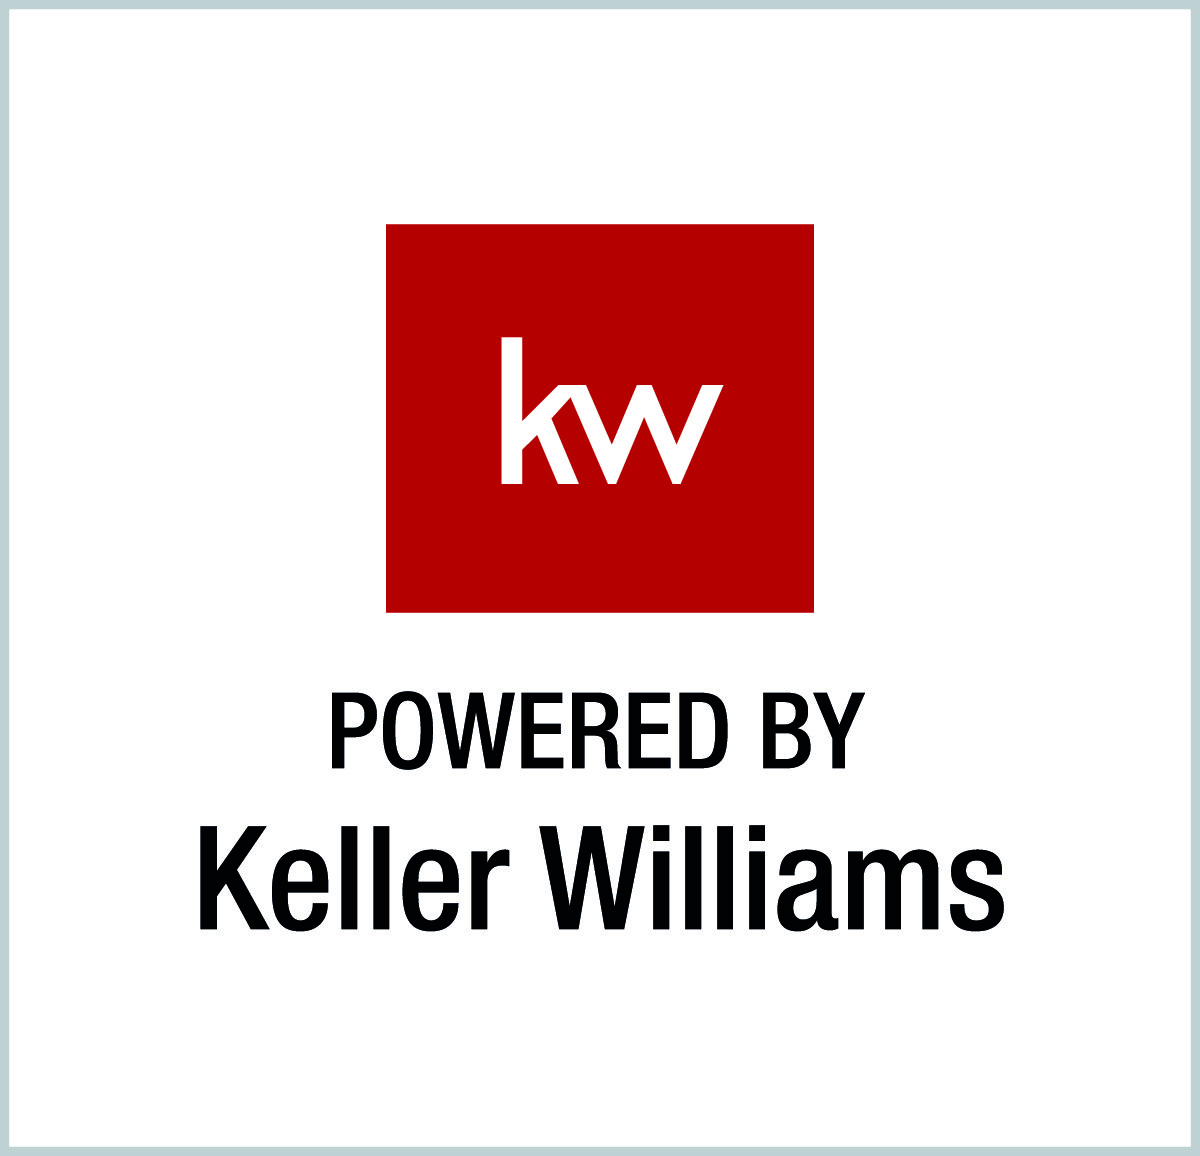 KW powered by Keller Williams logo